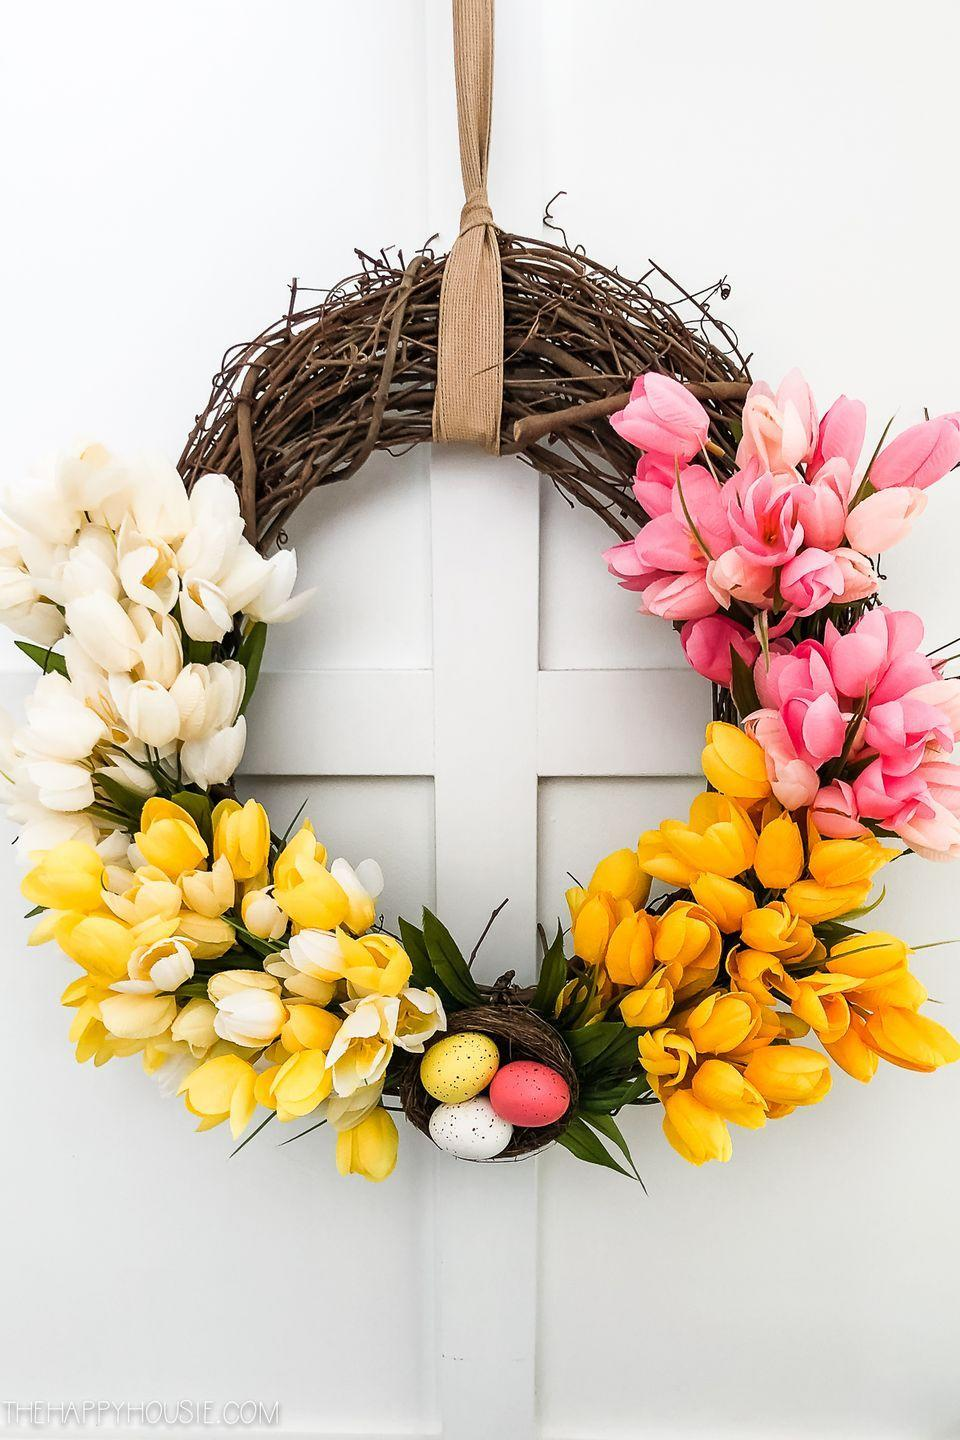 """<p>Now that it's spring, tulips have begun bursting into bloom. You can celebrate their return with a wreath covered in them! This one has a gorgeous ombré look that's truly eye-catching and takes mere minutes to make.</p><p><strong>Get the tutorial at <a href=""""https://thehappyhousie.porch.com/ombre-tulip-spring-easter-wreath/"""" rel=""""nofollow noopener"""" target=""""_blank"""" data-ylk=""""slk:The Happy Housie"""" class=""""link rapid-noclick-resp"""">The Happy Housie</a>.</strong></p><p><a class=""""link rapid-noclick-resp"""" href=""""https://go.redirectingat.com?id=74968X1596630&url=https%3A%2F%2Fwww.walmart.com%2Fip%2FAdTech-Crystal-Clear-Hot-Glue-Gun-Full-Size-Sticks-W220-1410-10-pieces-Length-4-Diameter-44%2F22217933&sref=https%3A%2F%2Fwww.thepioneerwoman.com%2Fhome-lifestyle%2Fcrafts-diy%2Fg35698457%2Fdiy-easter-wreath-ideas%2F"""" rel=""""nofollow noopener"""" target=""""_blank"""" data-ylk=""""slk:SHOP HOT GLUE"""">SHOP HOT GLUE</a></p>"""